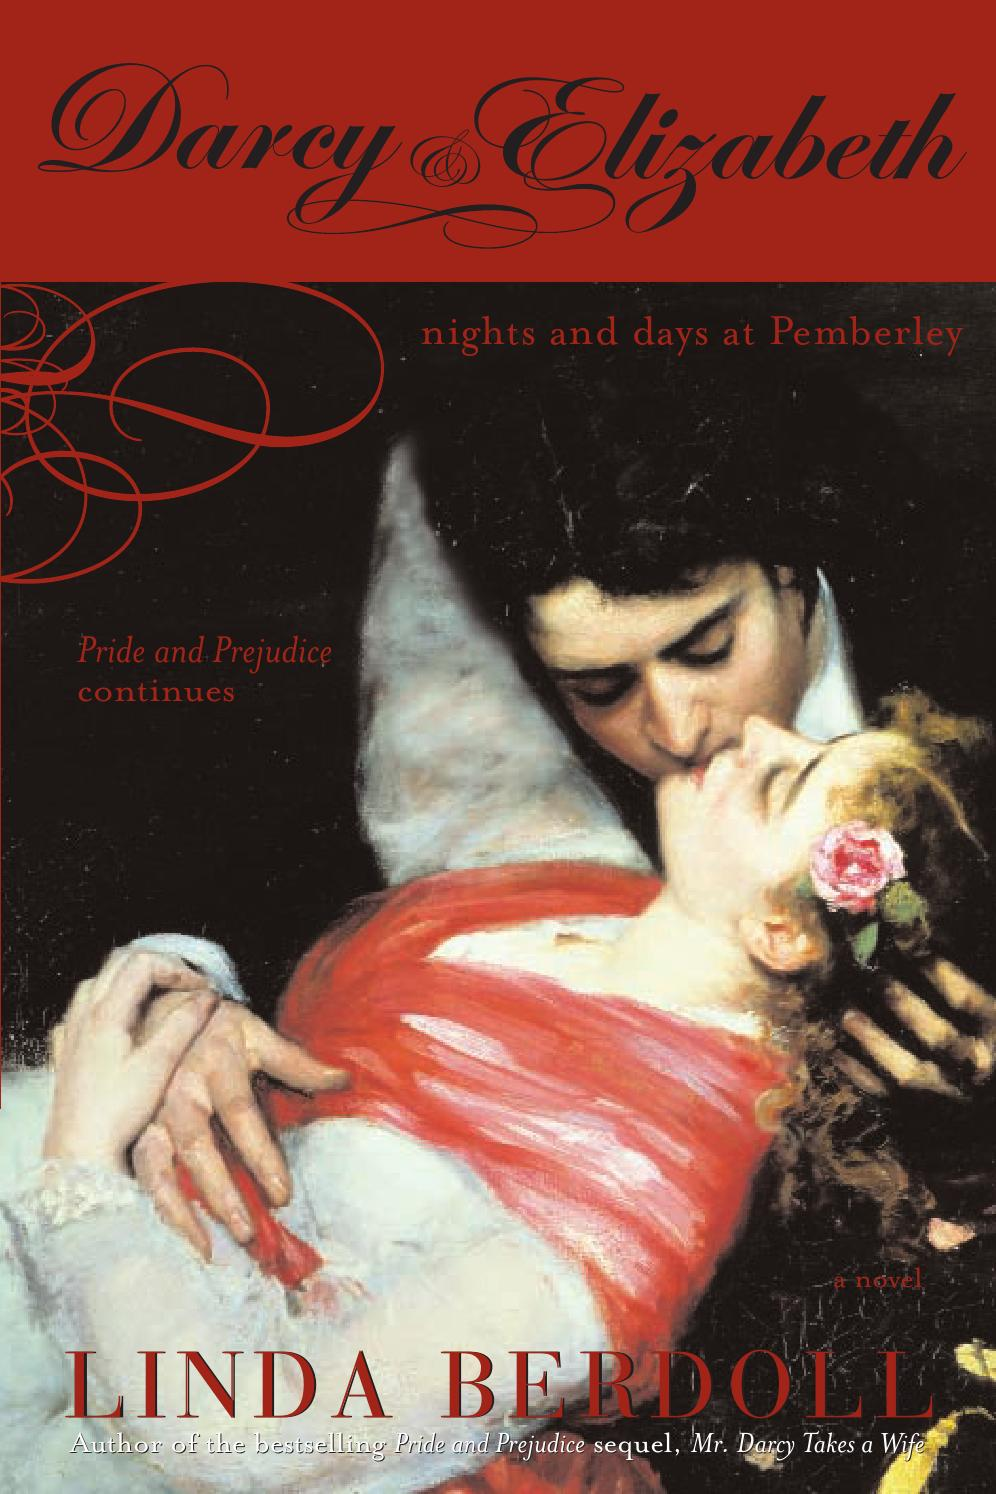 e5792634cd2 Linda berdoll darcy and elizabeth  nights and days at pemberley by biiaharc  - issuu